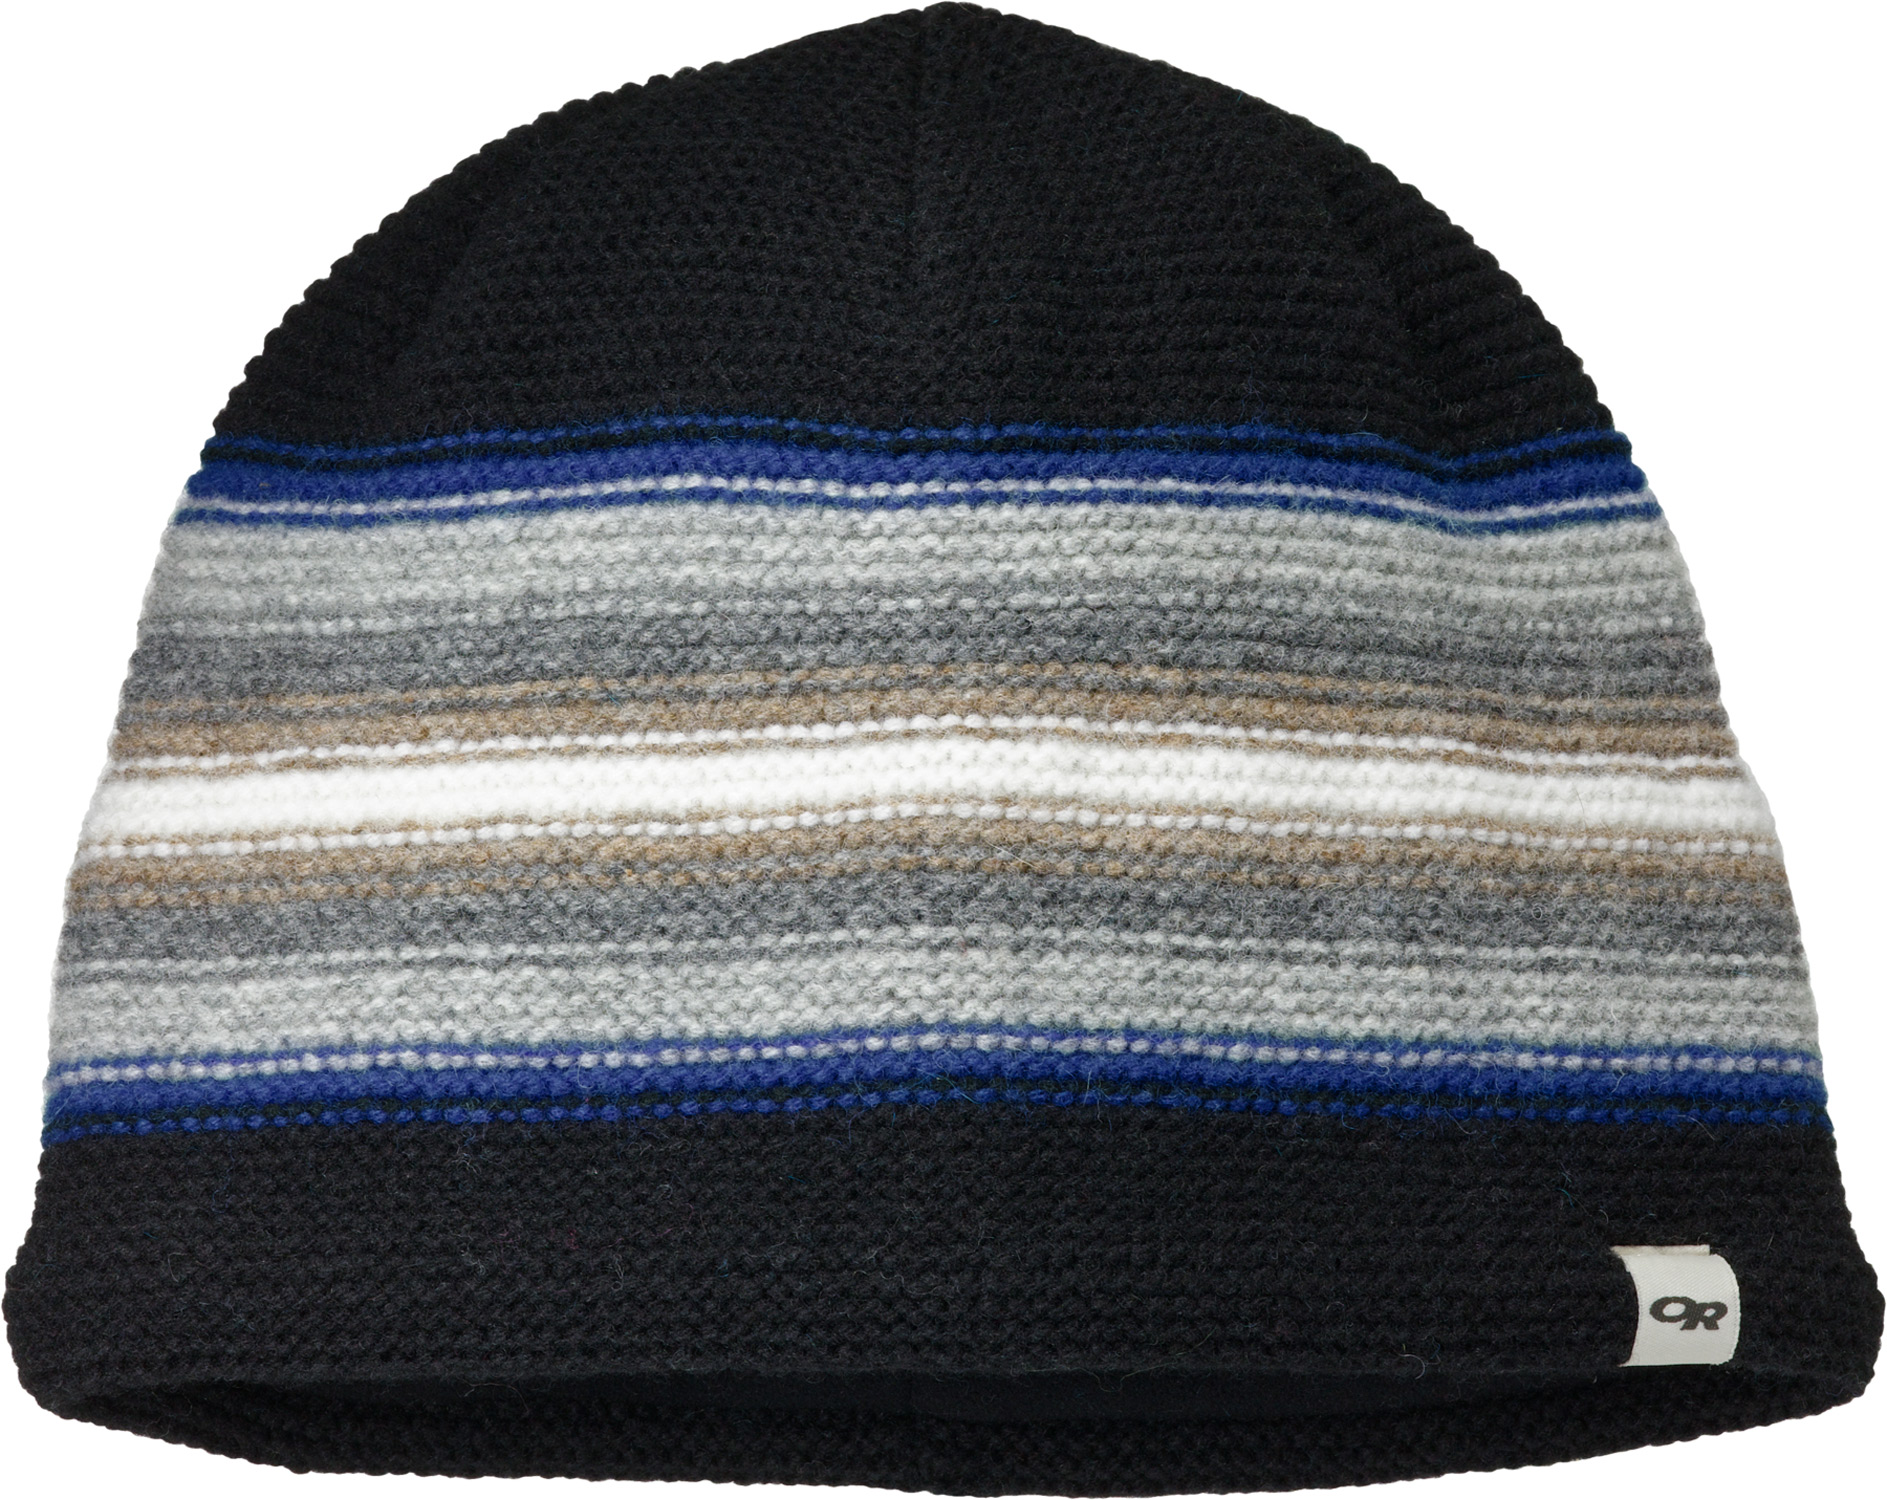 This Outdoor Research Spitsbergen Beanie is the cadillac of beanies. This fun looking and great to wear fleeced lined beanie will be your favorite to have on. With this Outdoor research spitsbergen beanie, there's no need to look anymore.Key Features of the Outdoor Research Spitsbergen Beanie: 100% wool WINDSTOPPER Technical Fleece lined ear band - $16.07